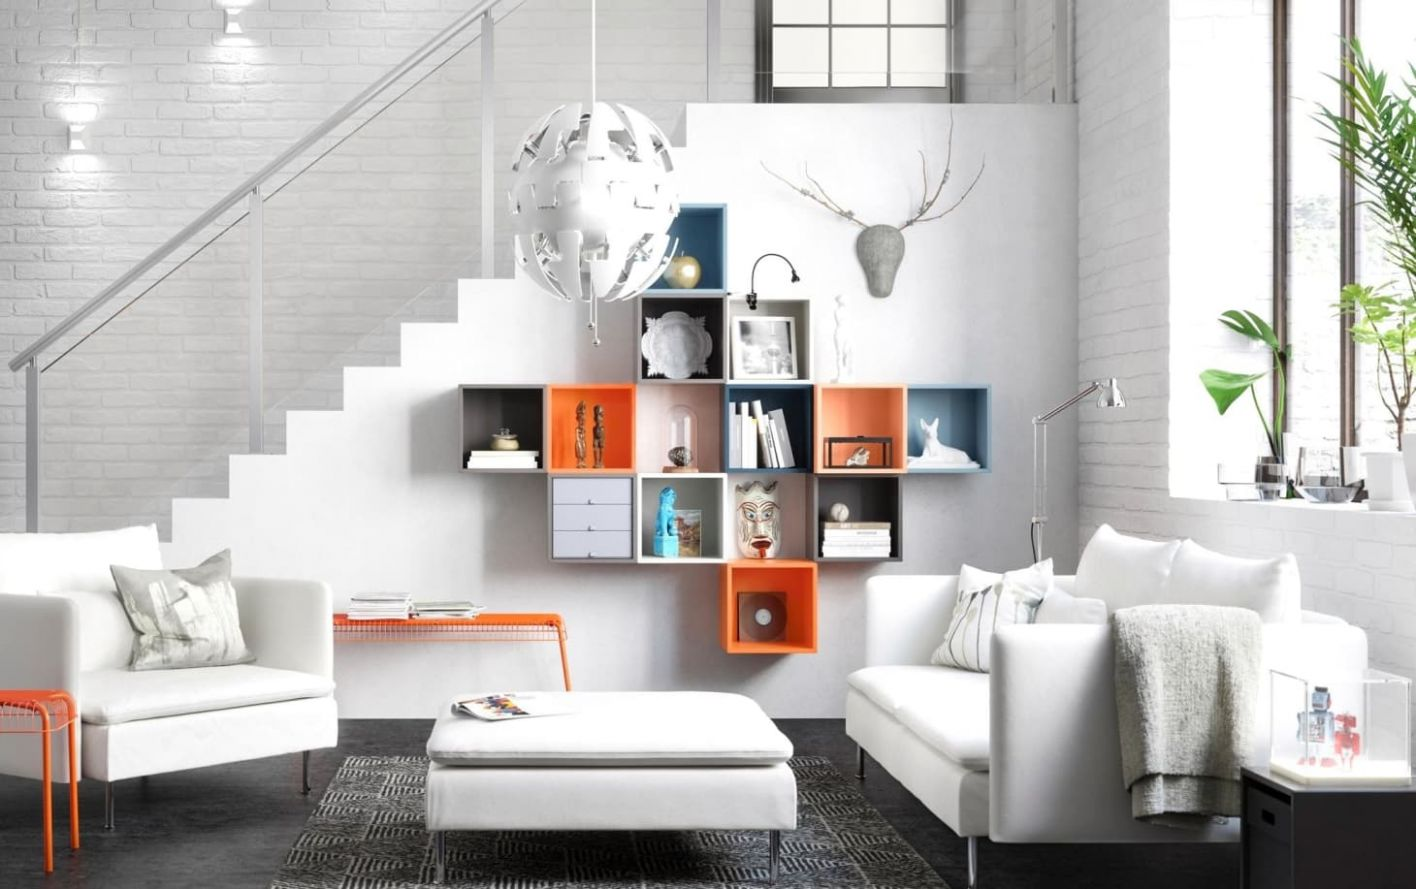 Small Living Room Layout Ideas from IKEA | Apartment Therapy - living room layout ideas